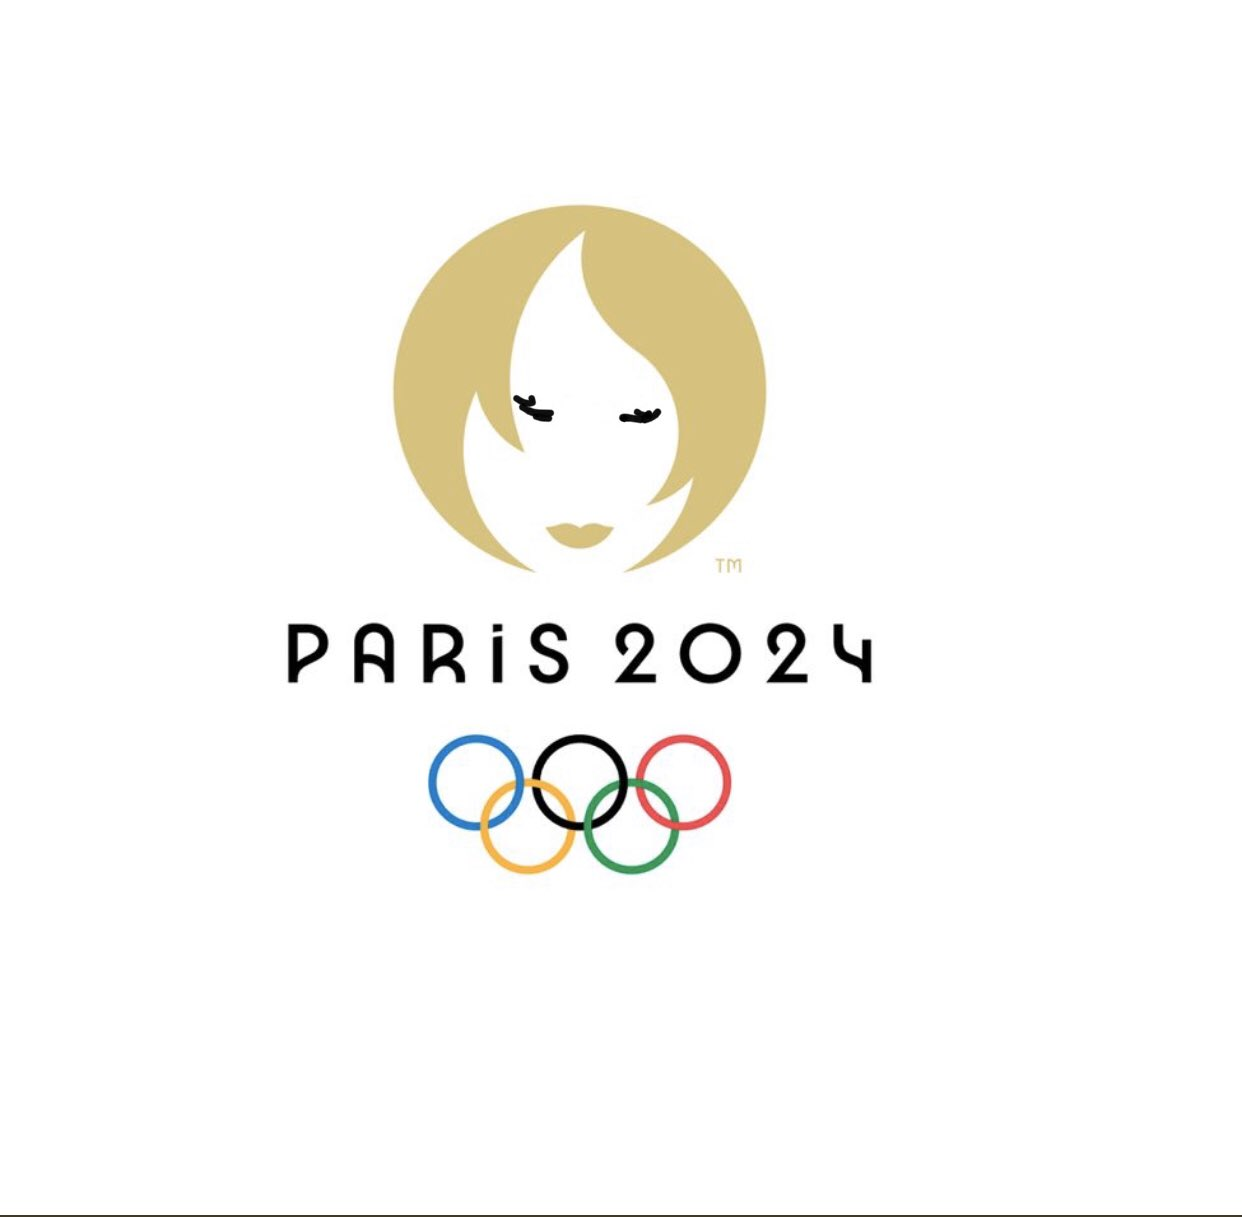 Les 3 Secrets du logo Paris 2024 34